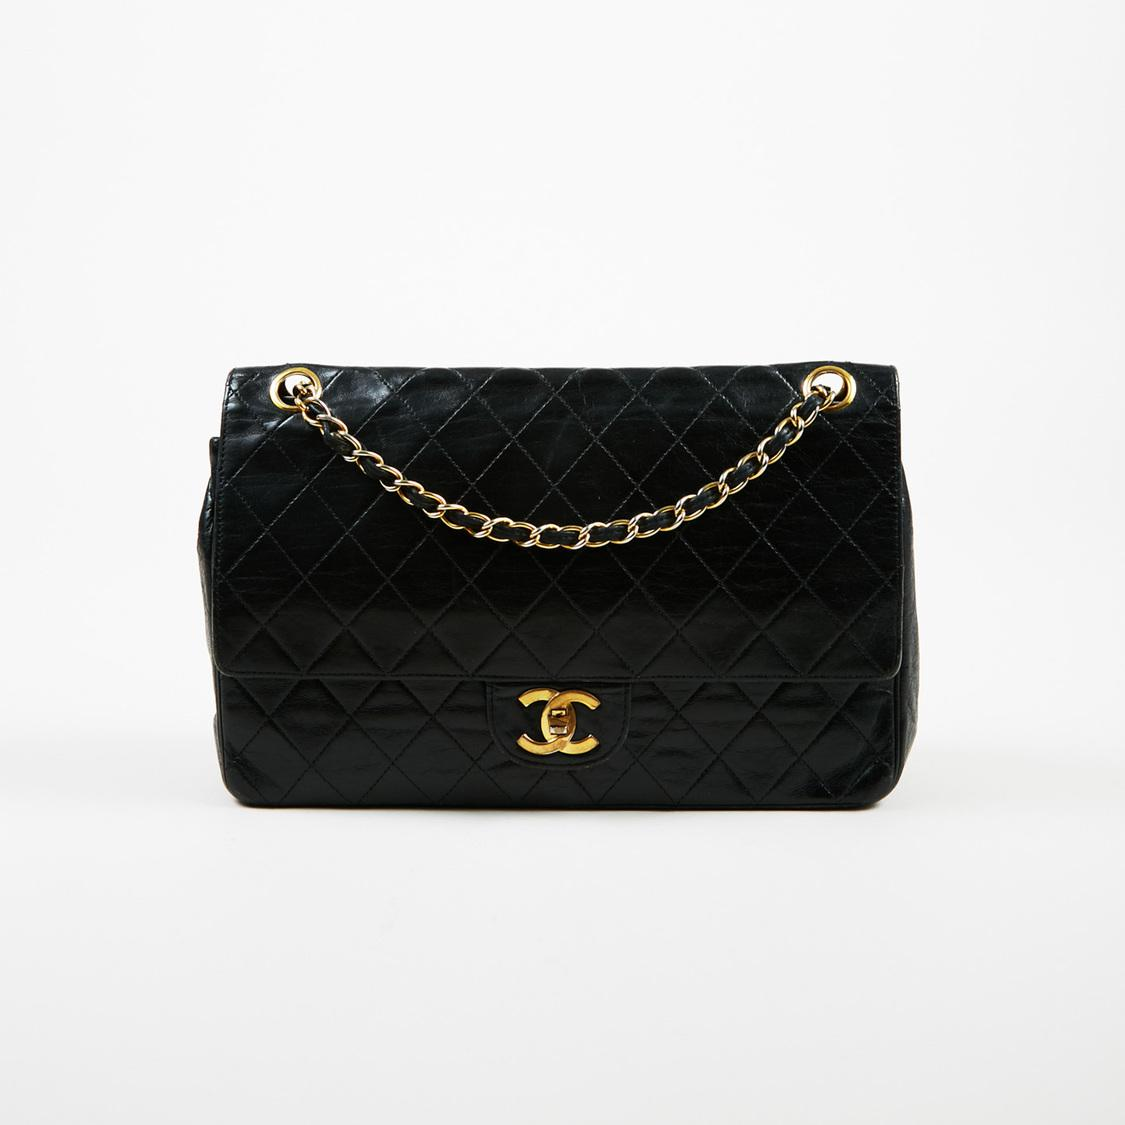 0132843d99f7 Lyst - Chanel Vintage Classic Double Flap Medium Quilted Lambskin ...